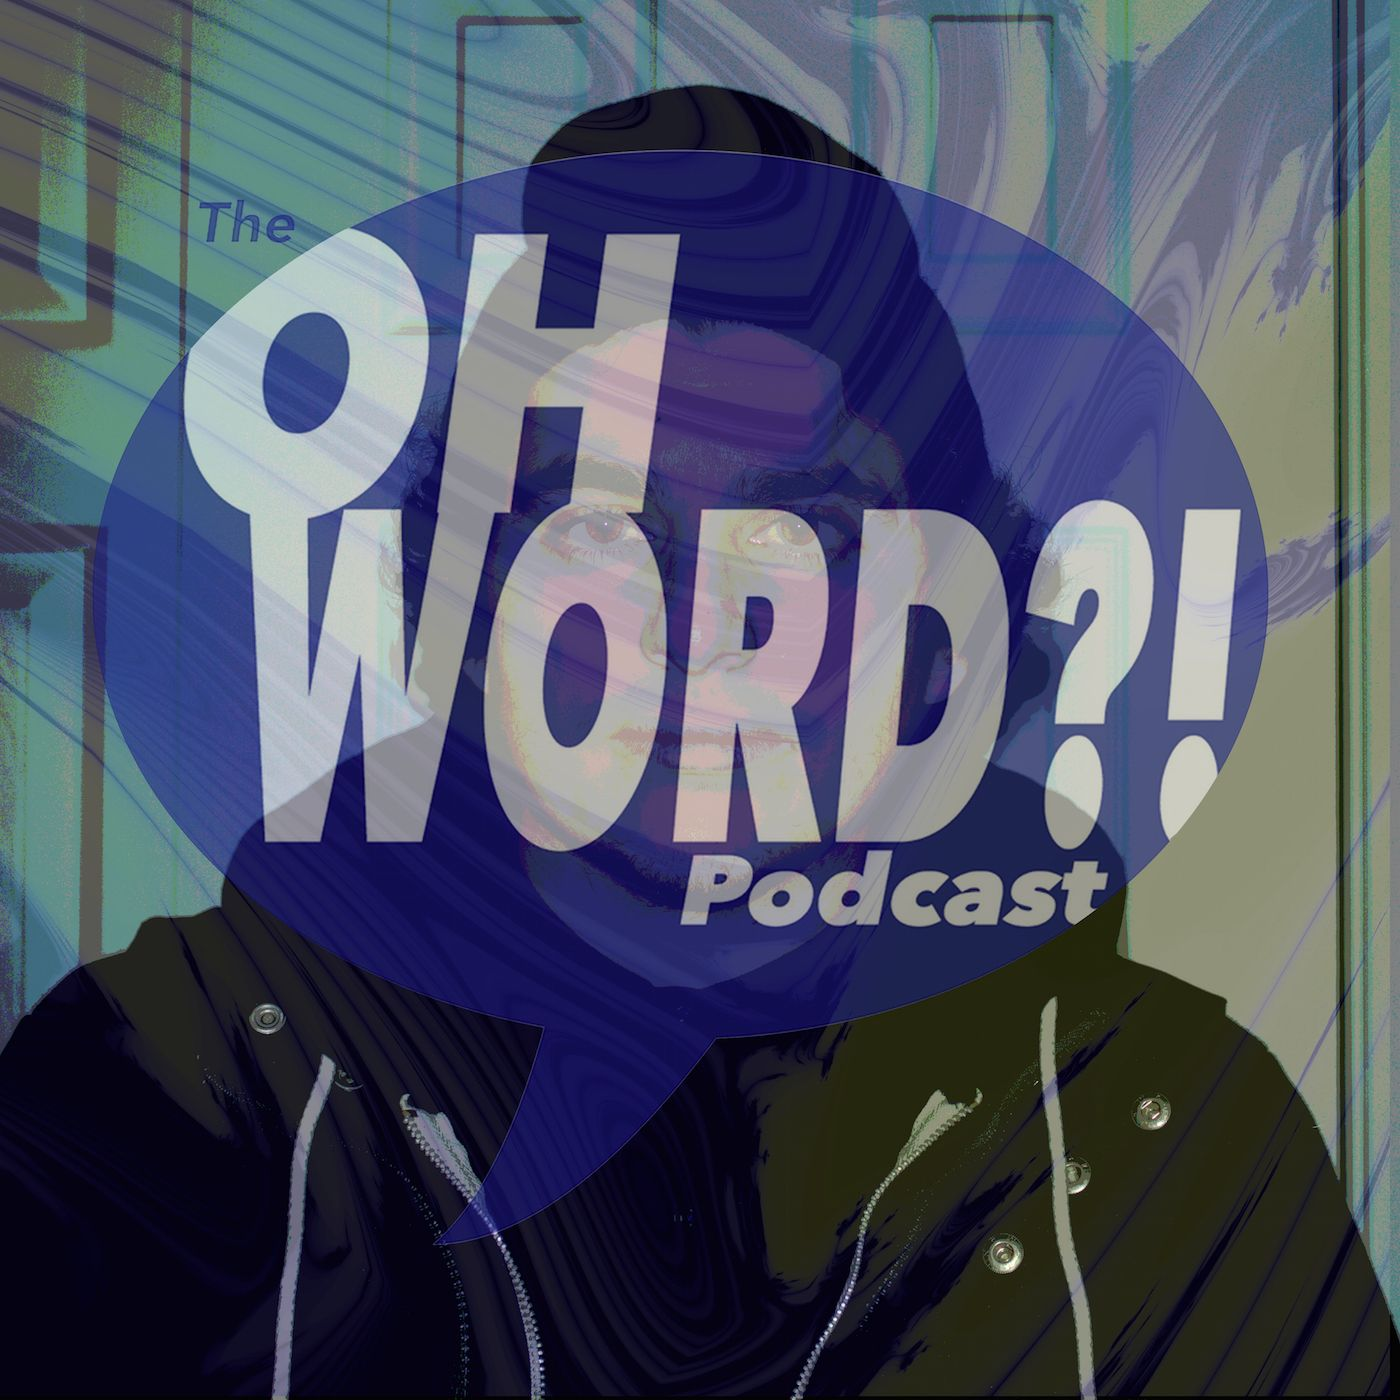 The Oh Word?! Podcast